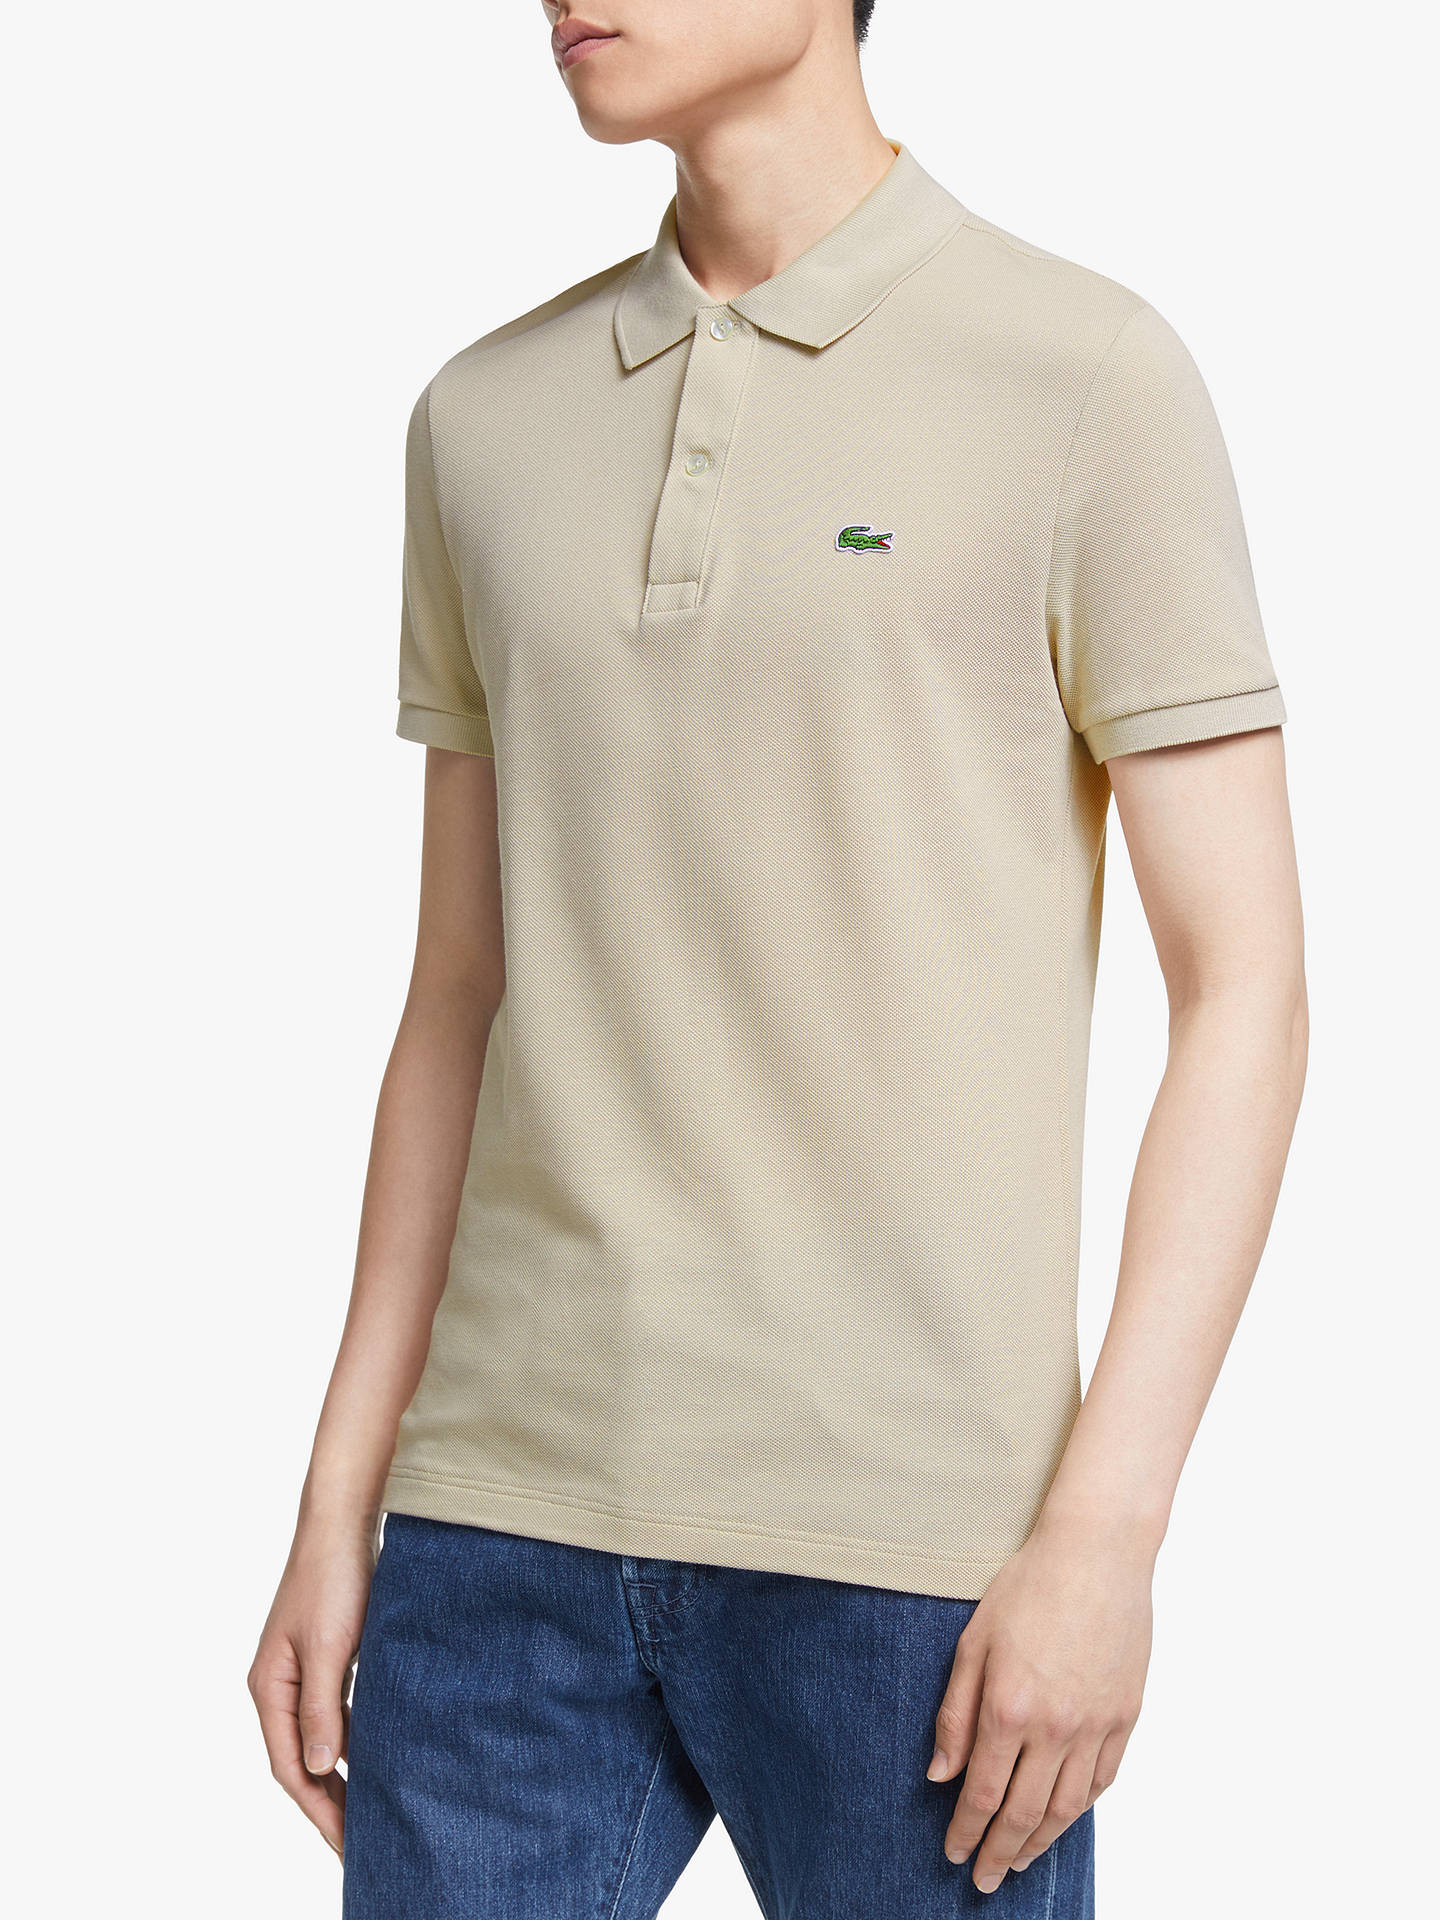 5c249e575e Lacoste Classic Slim Fit Short Sleeve Polo Shirt at John Lewis ...